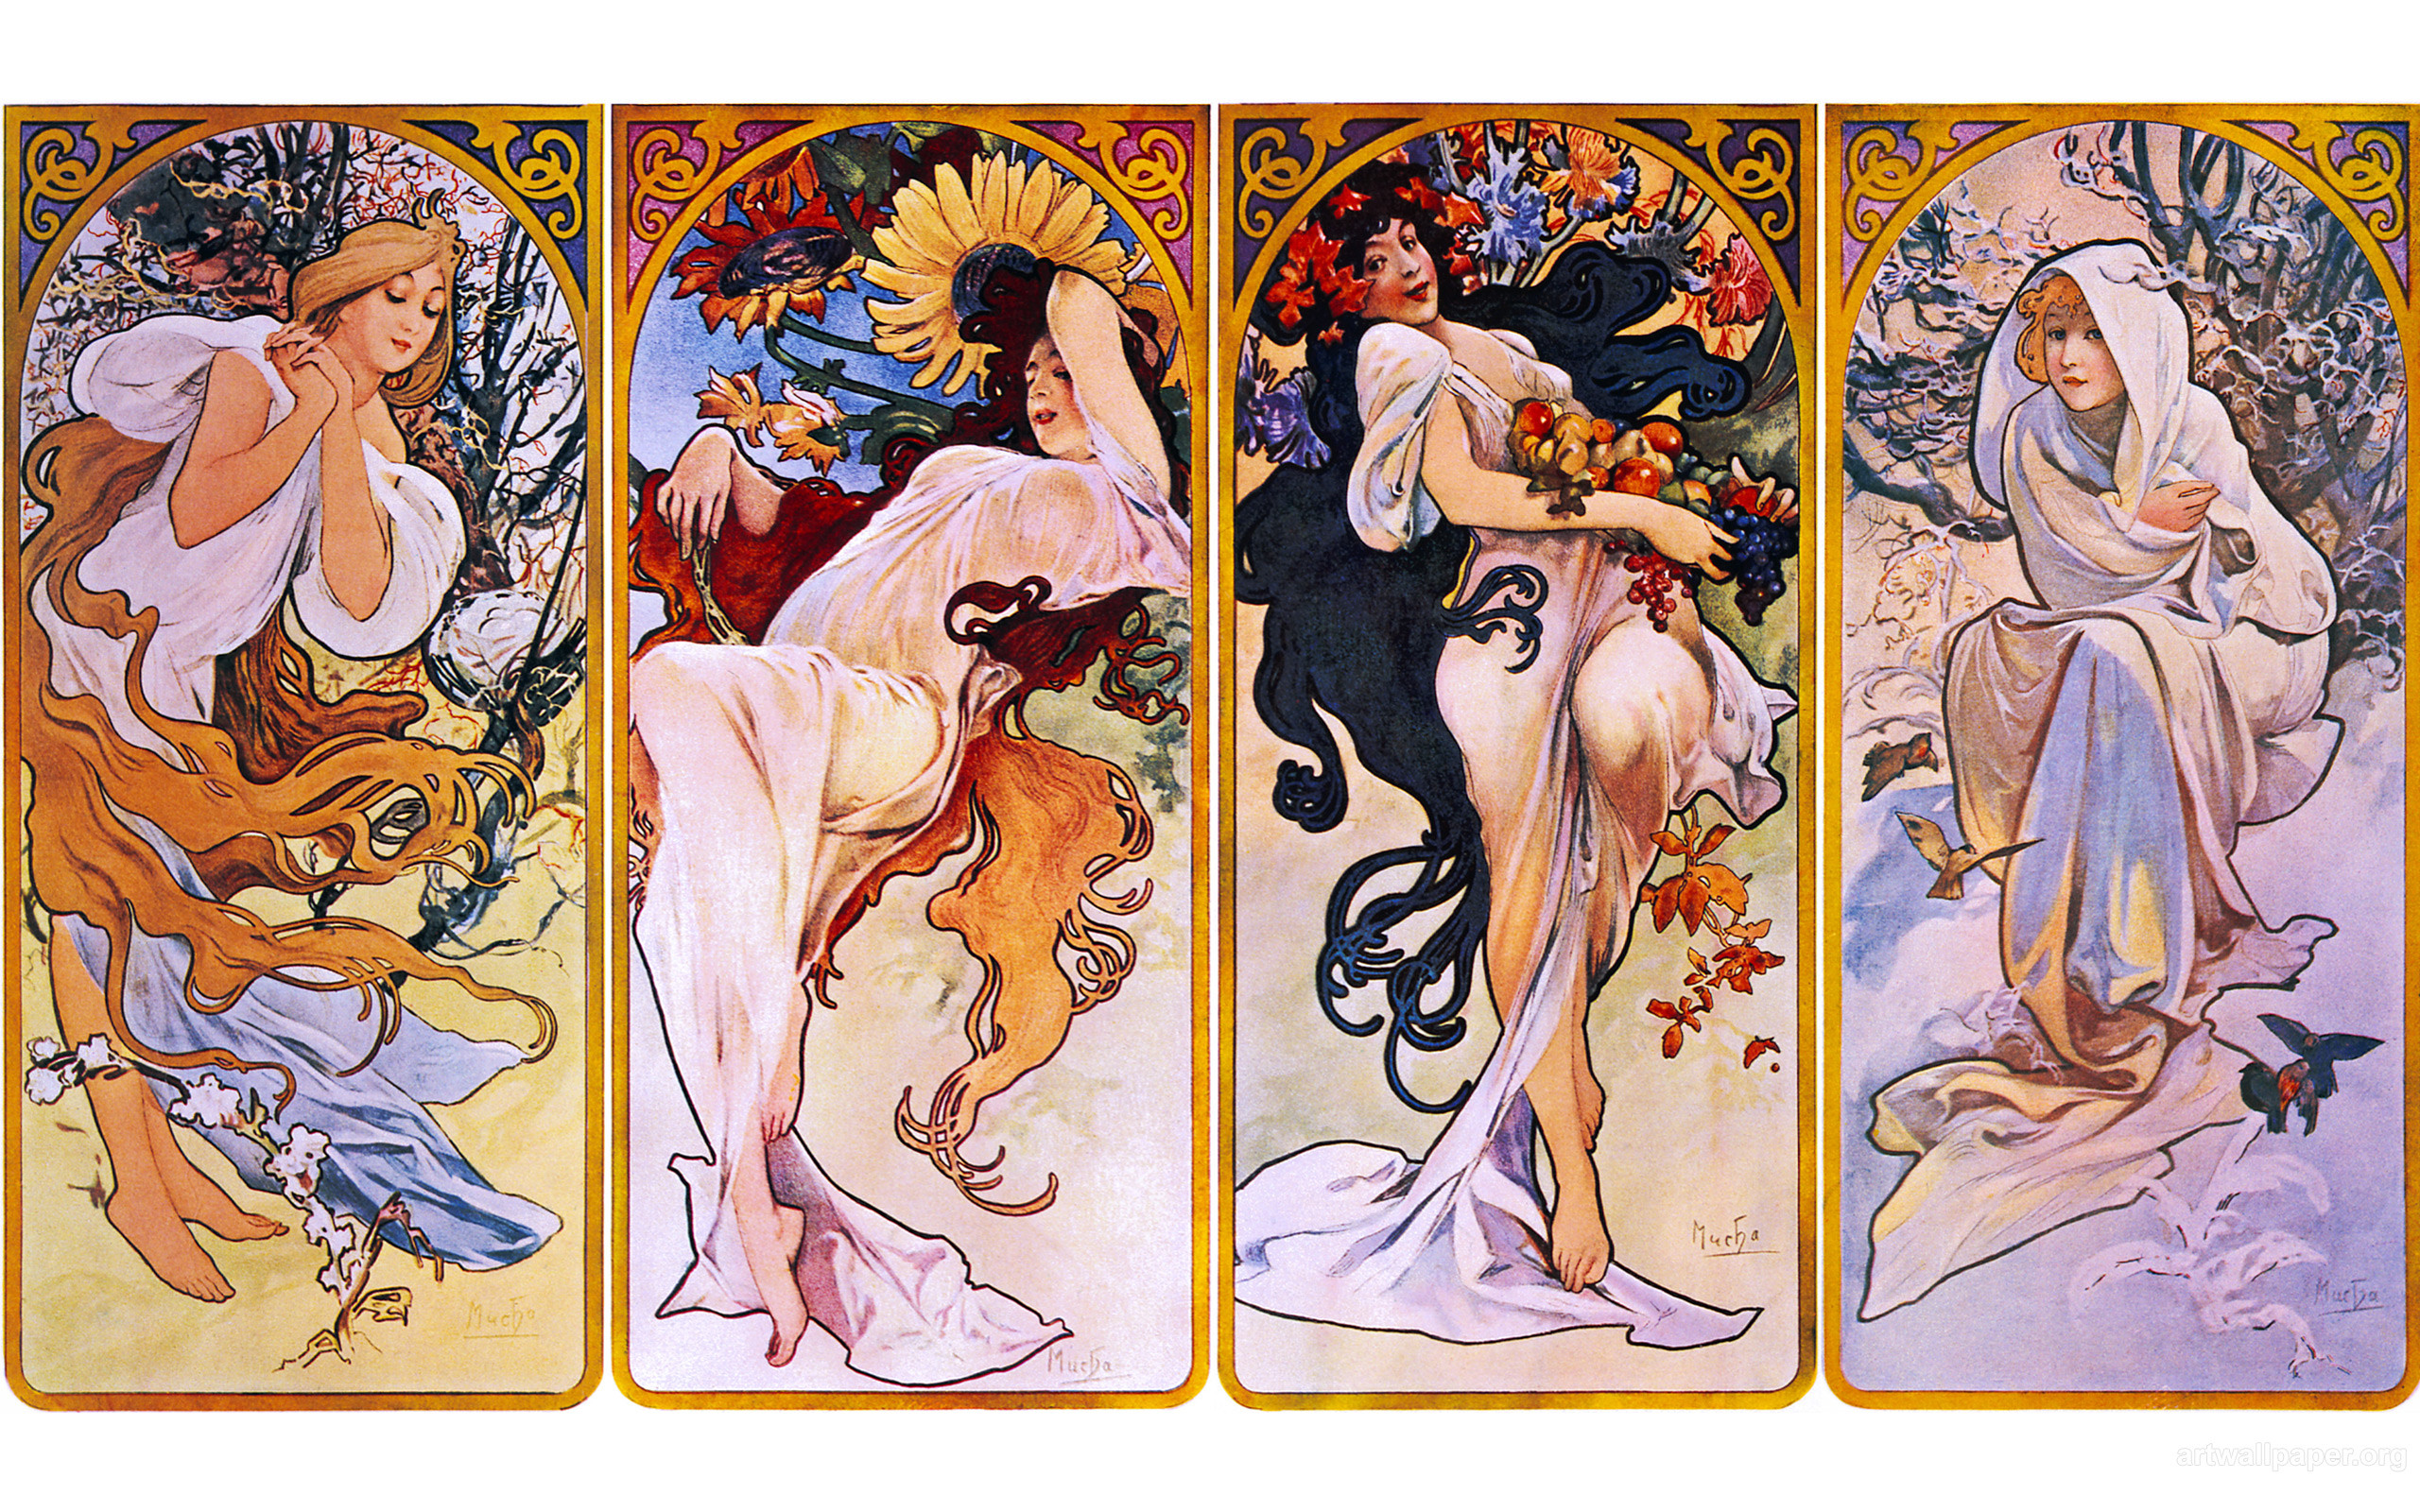 2560x1600 Alphonse Mucha Wallpaper, Art 2